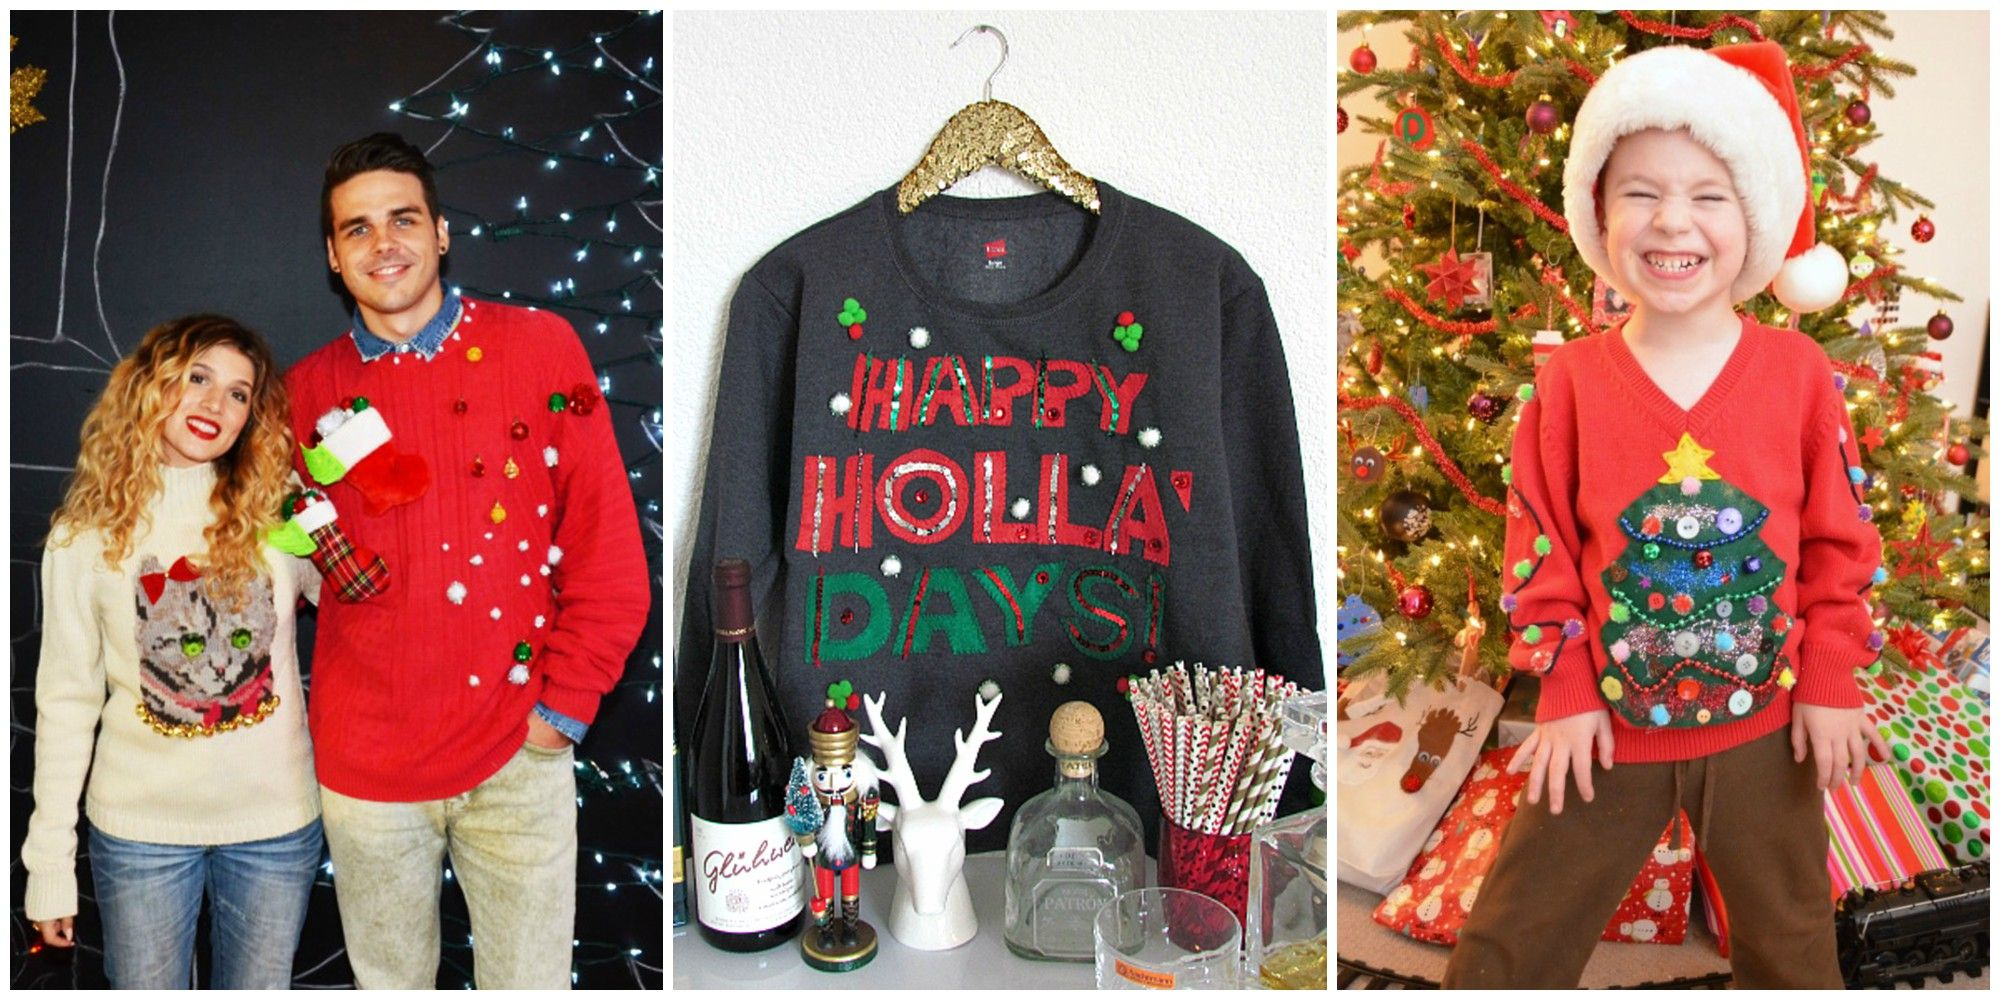 best diy ugly christmas sweater ideas ugly christmas sweater diys - Homemade Ugly Christmas Sweater